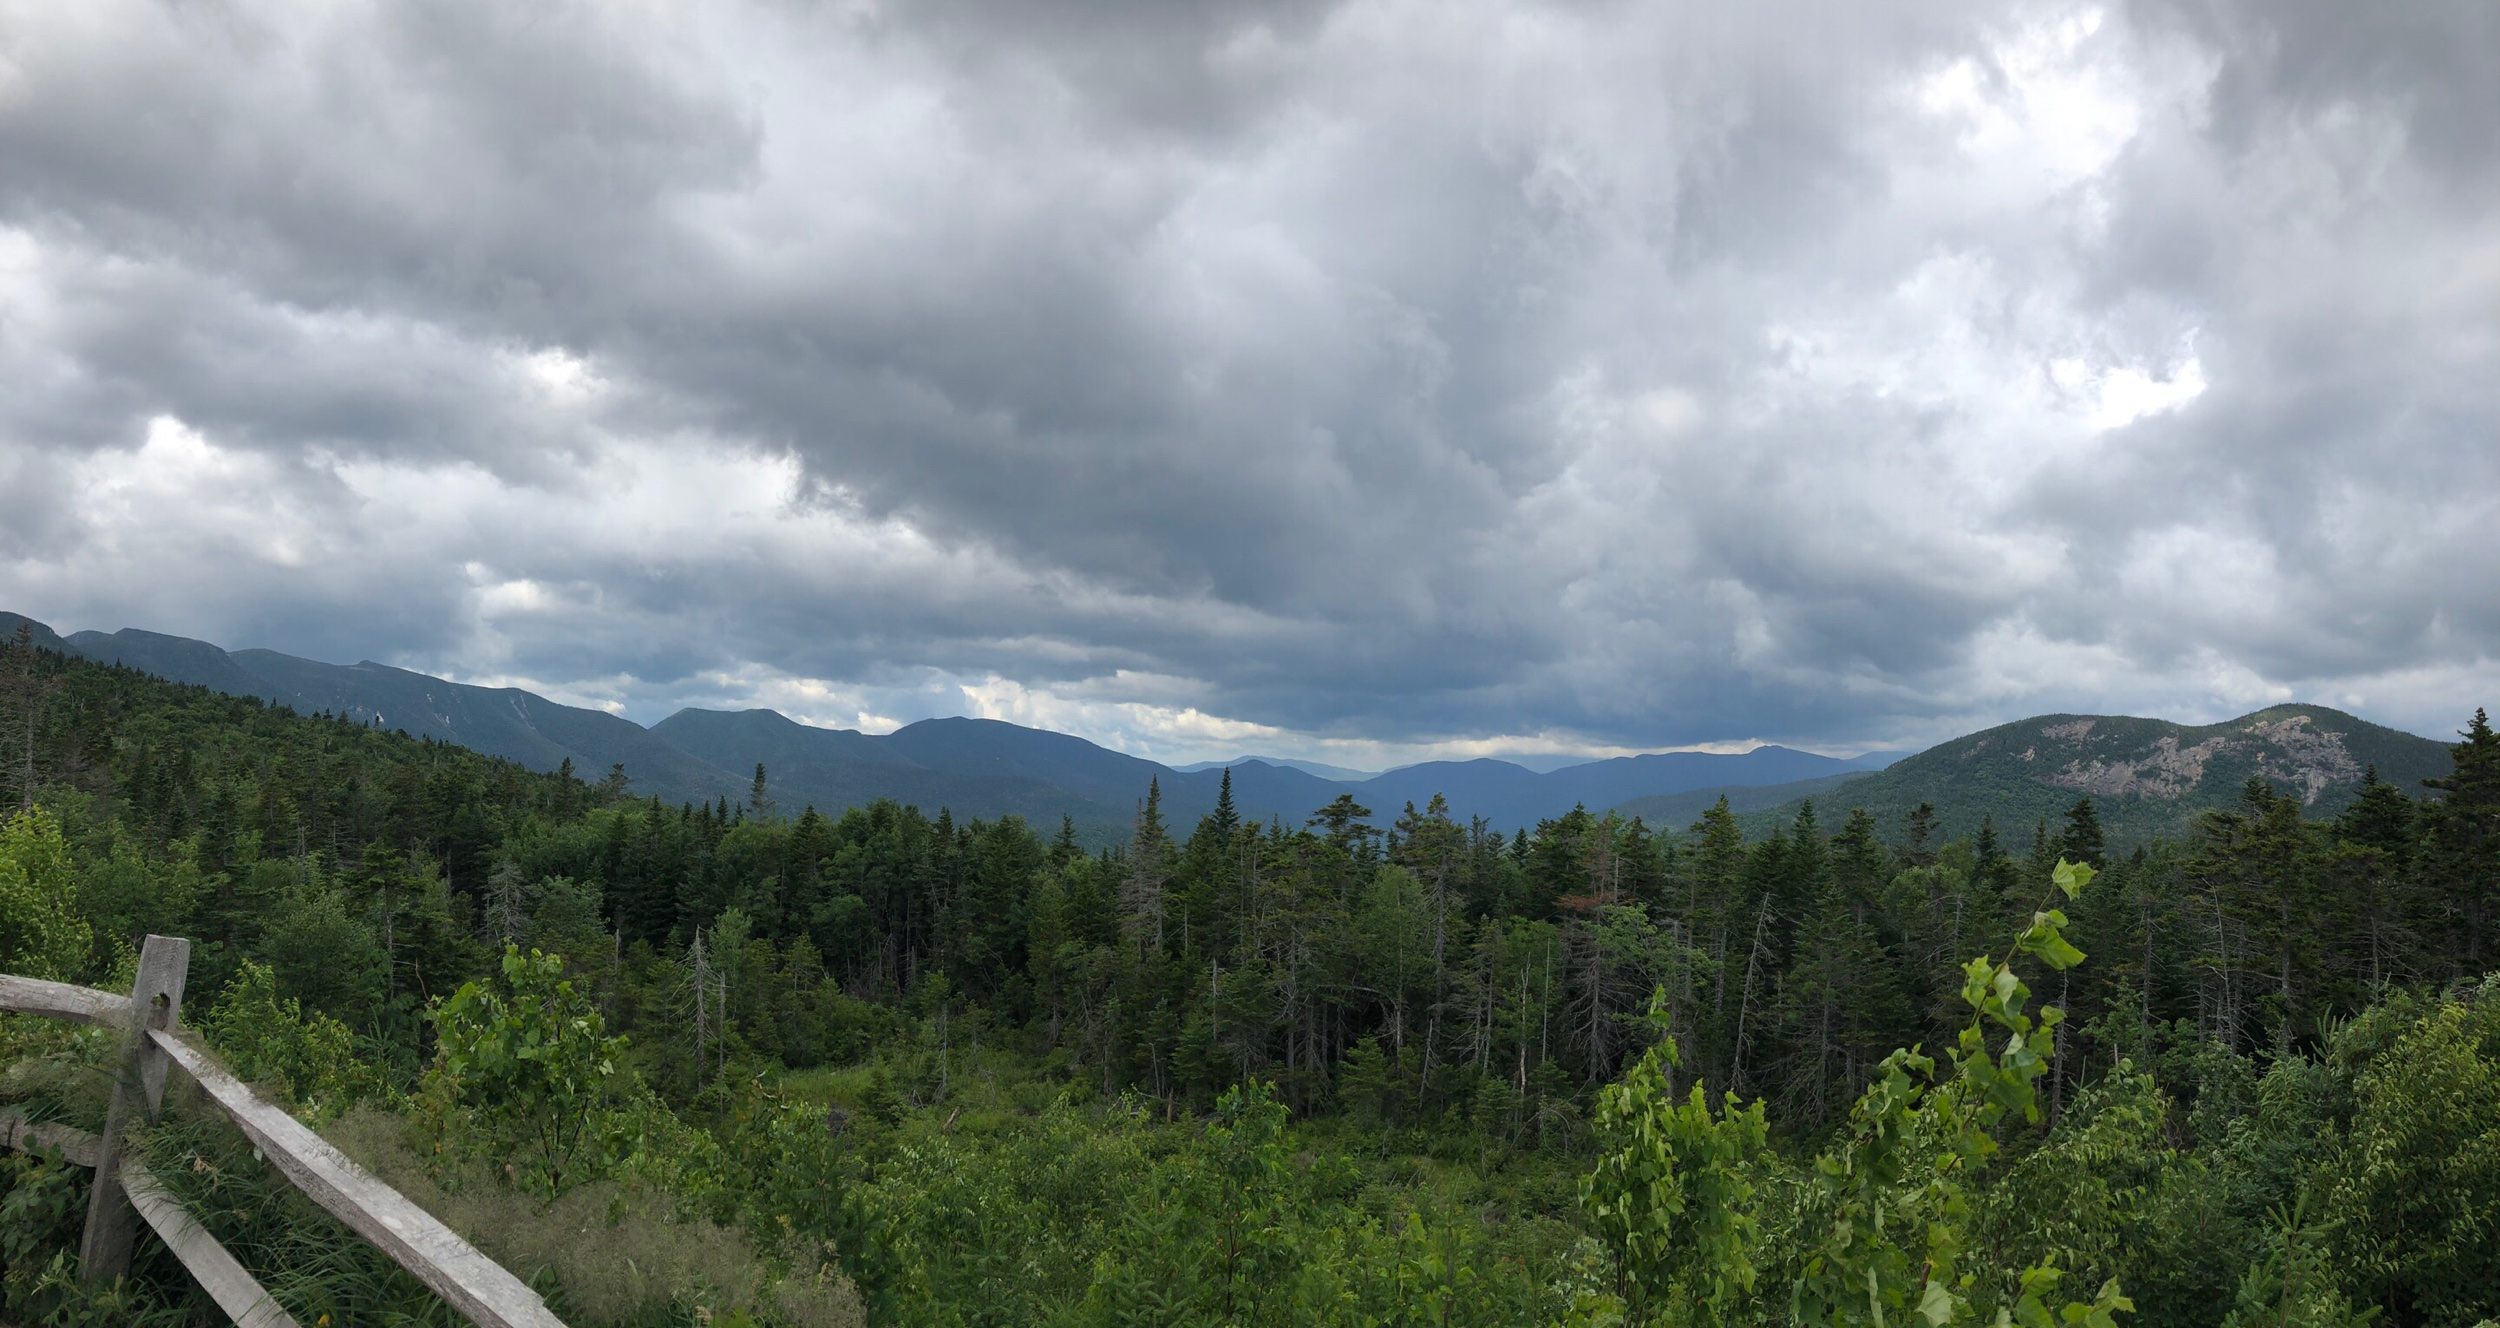 Storm clouds over the White Mountains